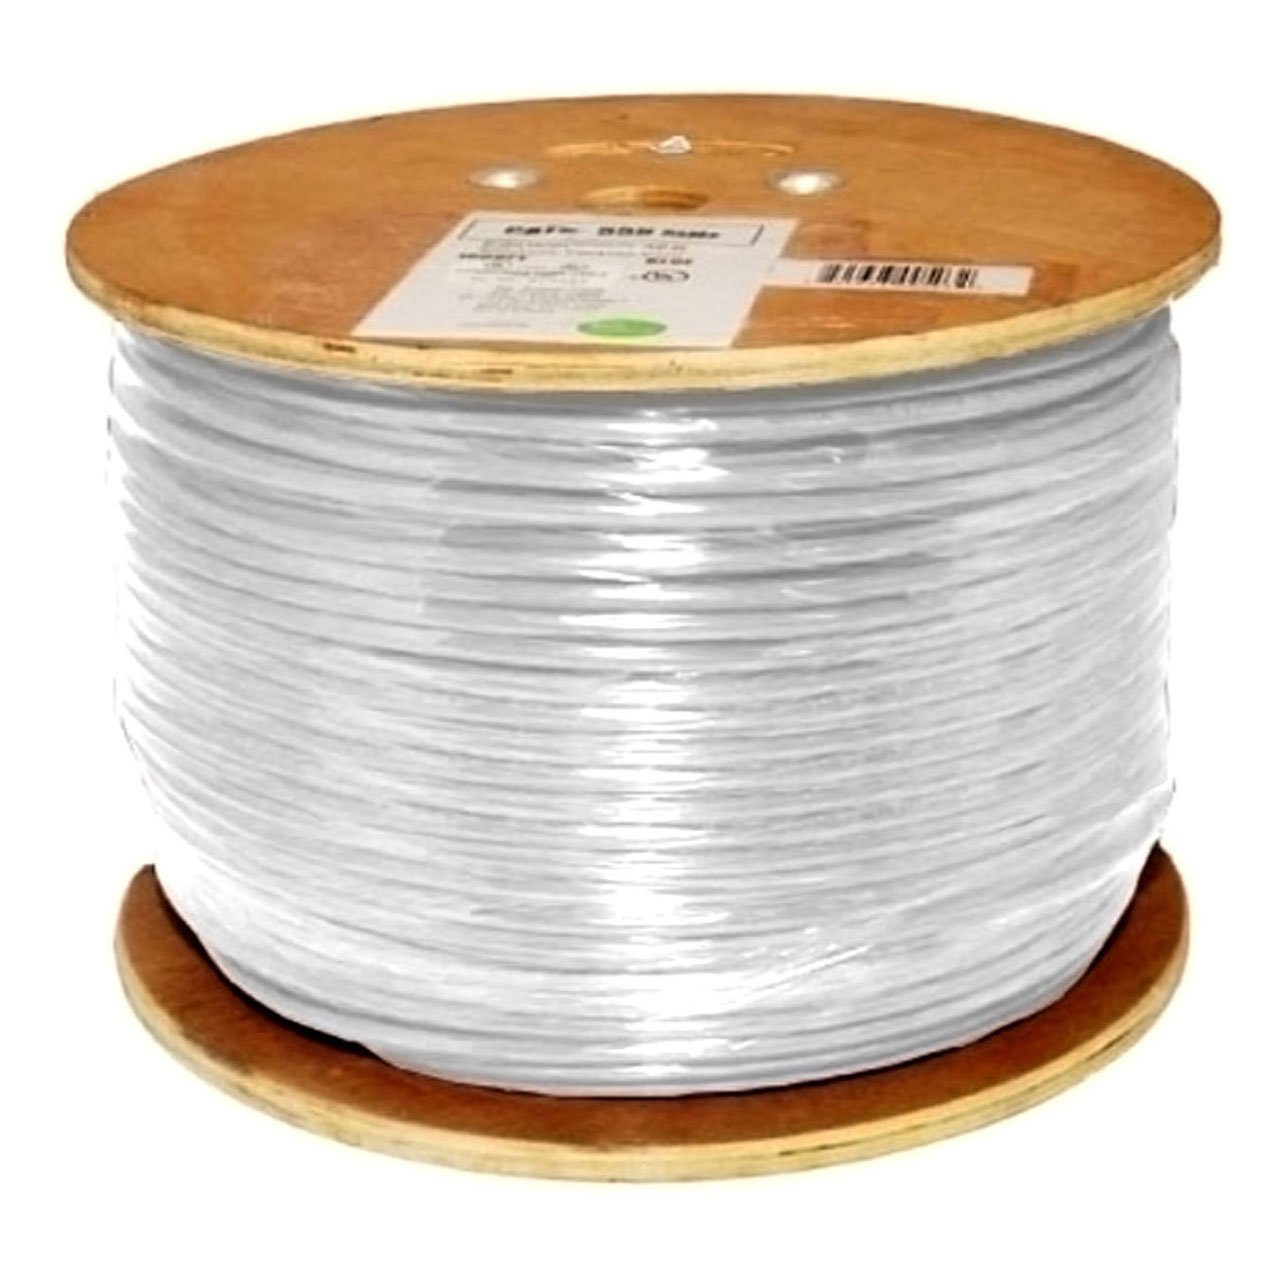 Amazon.com: Vertical Cable Cat6, 550 MHz, Shielded, 23AWG, Solid ...